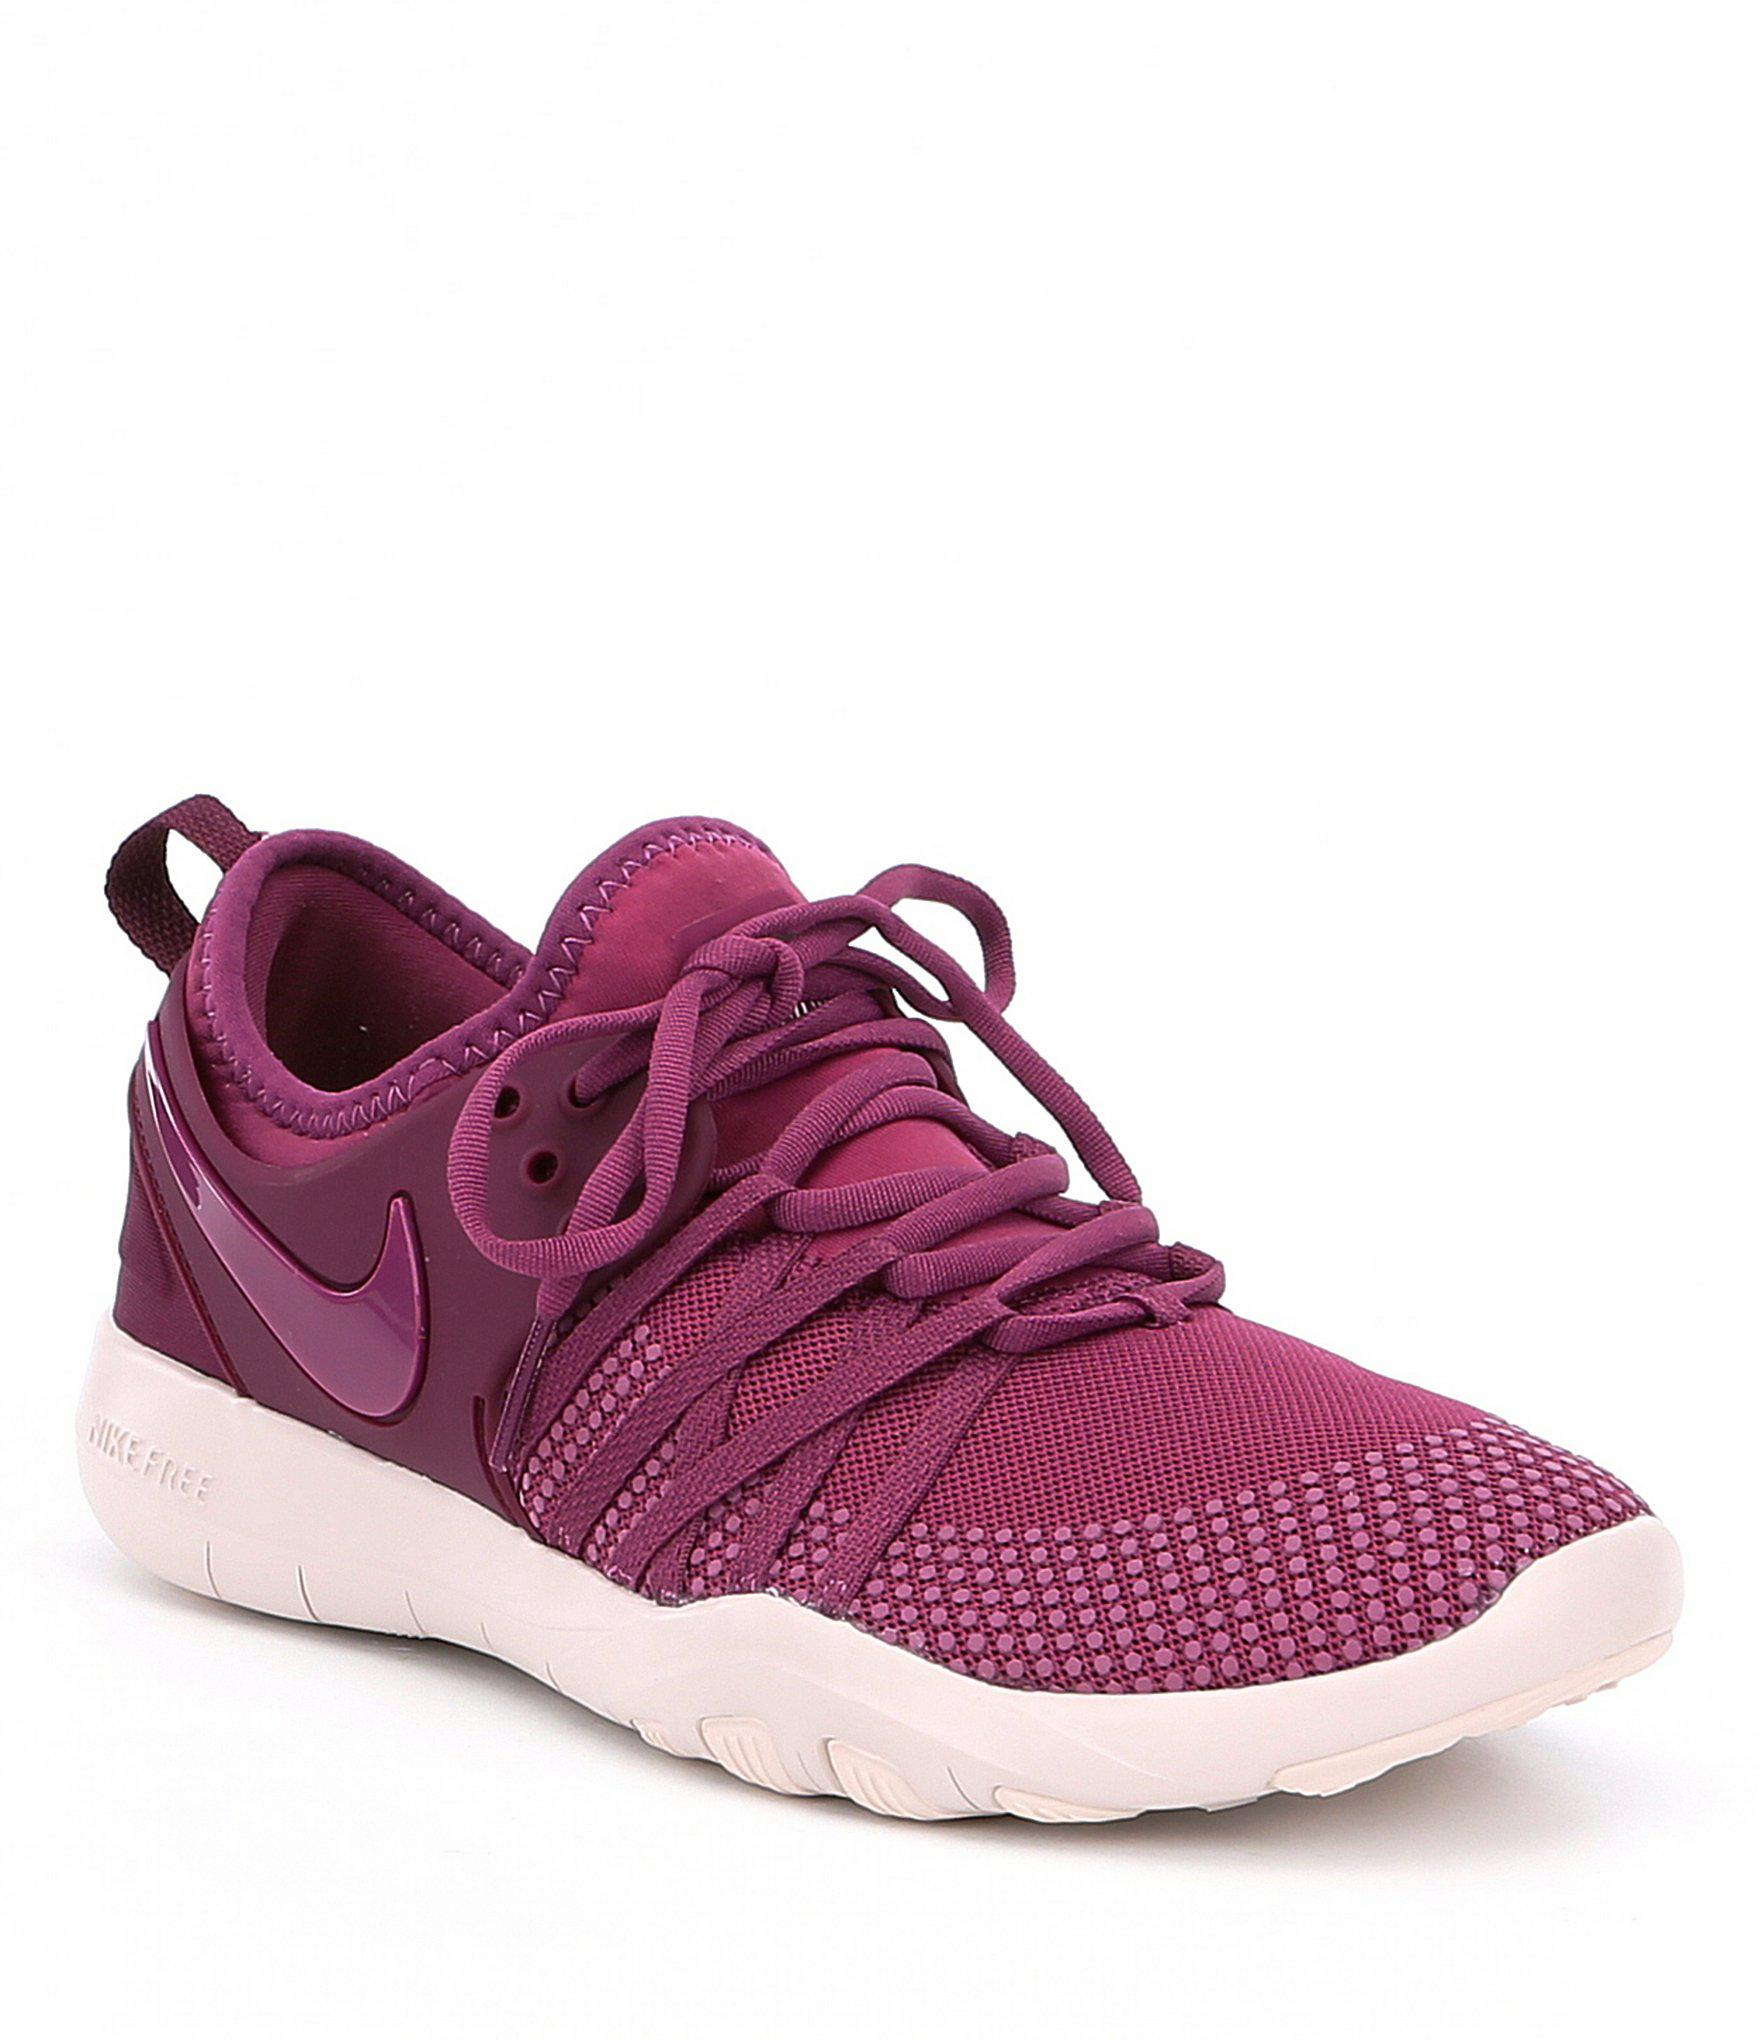 3b2752db134c7 ... Lyst Nike Womens Free Tr 7 Training Shoes Gallery Source · Nike Free  TR7 Tea Berry Siltstone Red Bordeaux ...